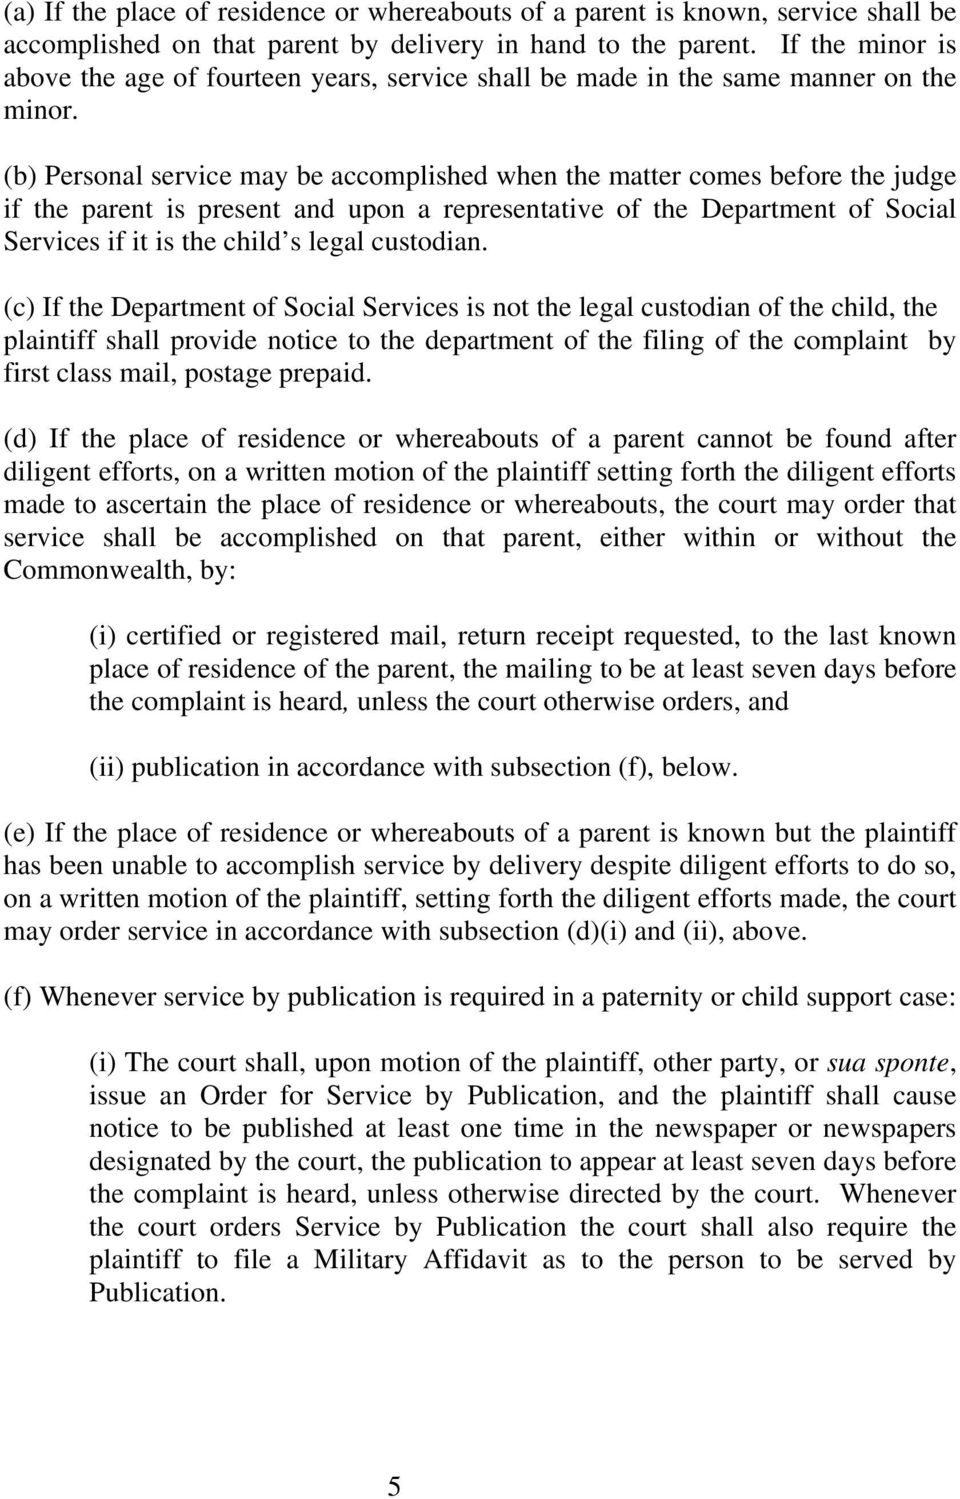 (b) Personal service may be accomplished when the matter comes before the judge if the parent is present and upon a representative of the Department of Social Services if it is the child s legal